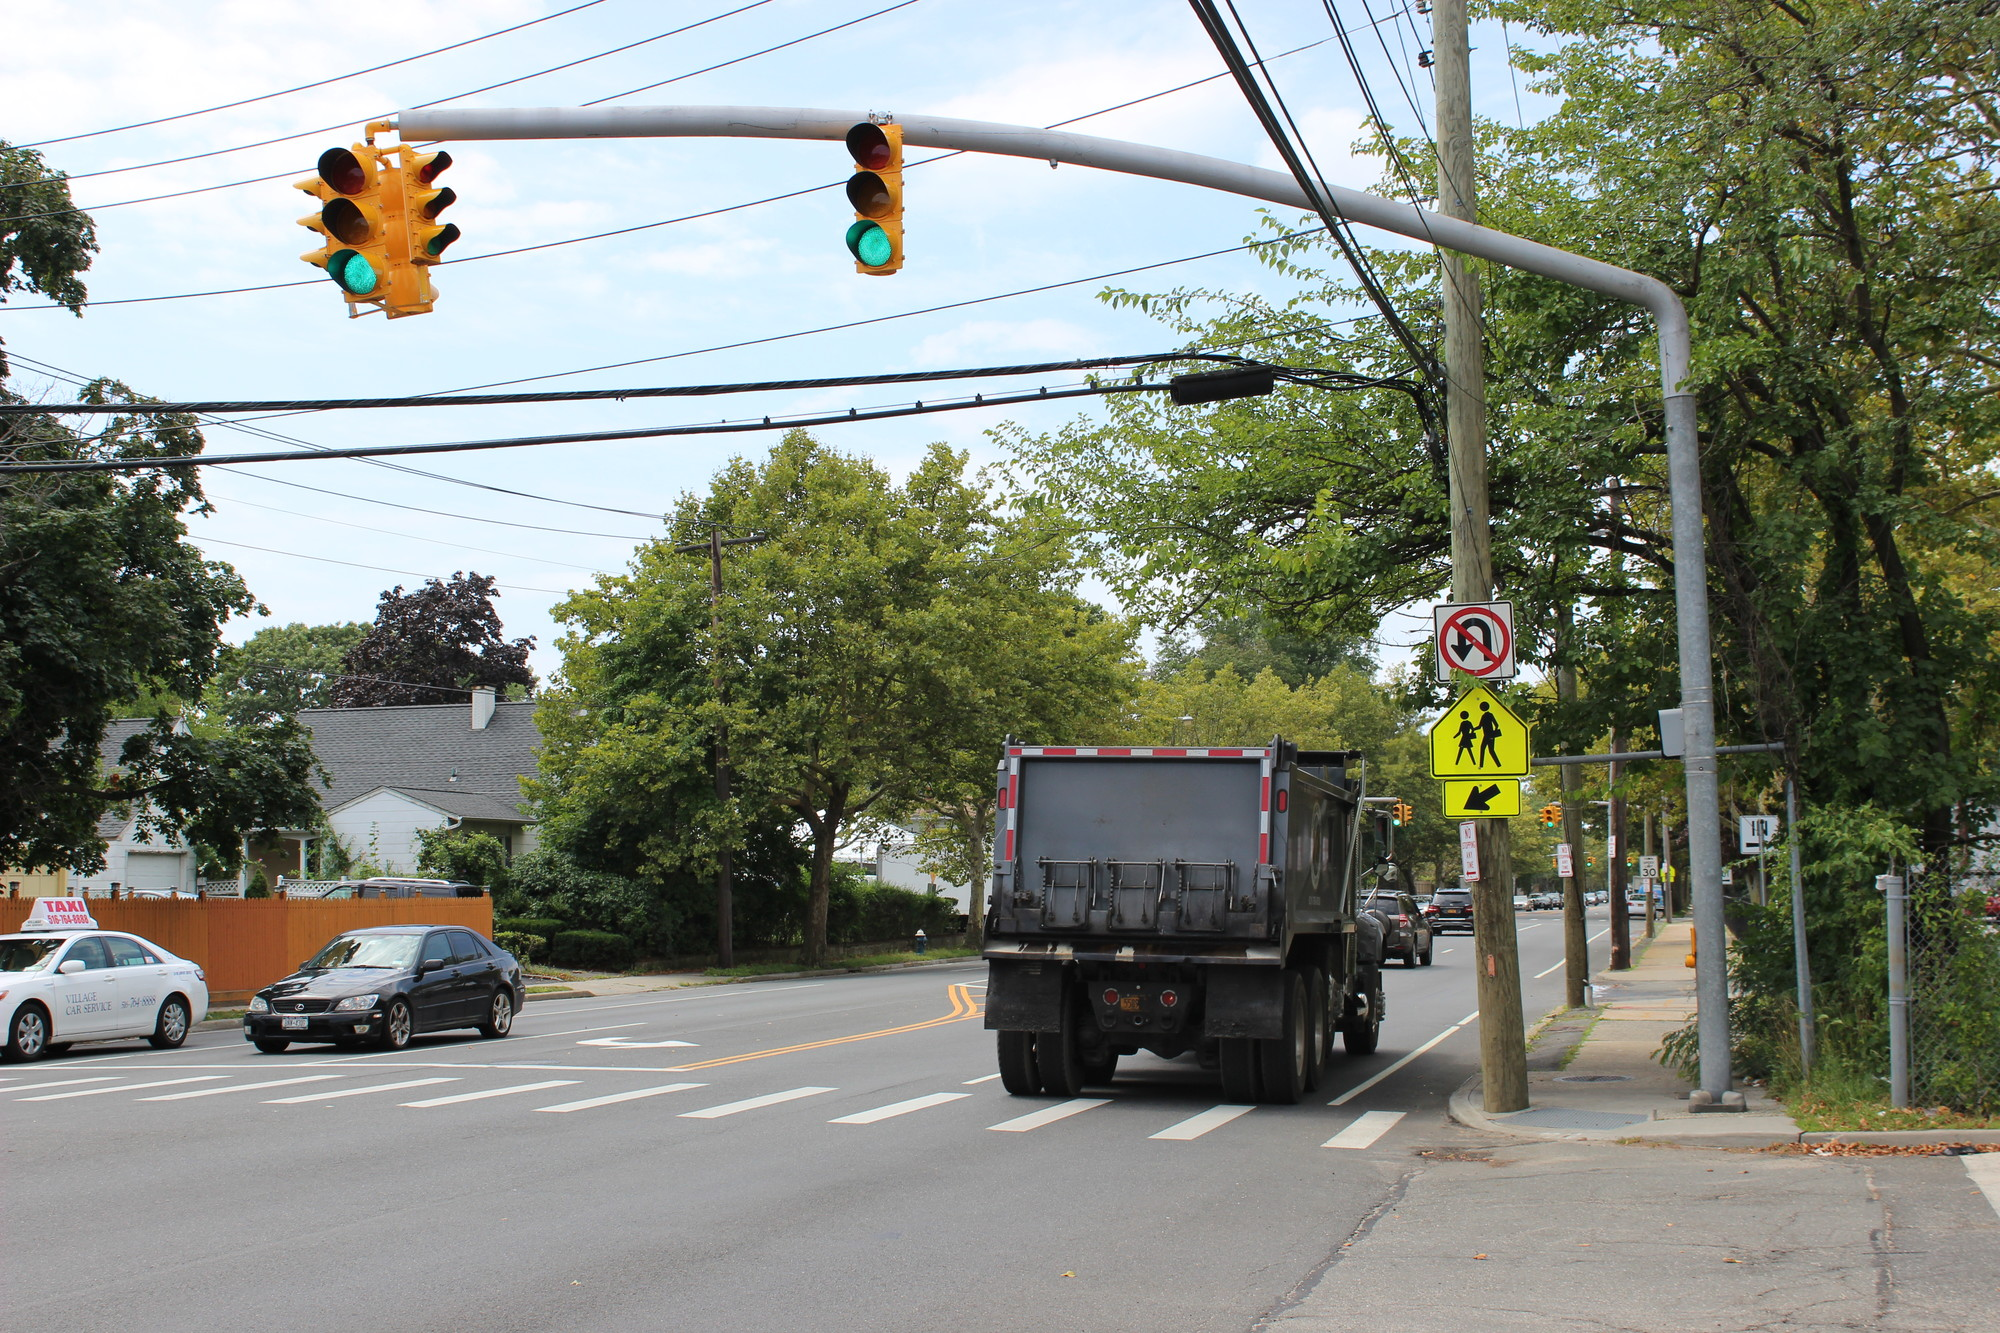 Peninsula Boulevard traffic near Woodmere Middle School will be monitored by a speed camera starting on Sept. 2, the first day of school for the Hewlett-Woodmere district.